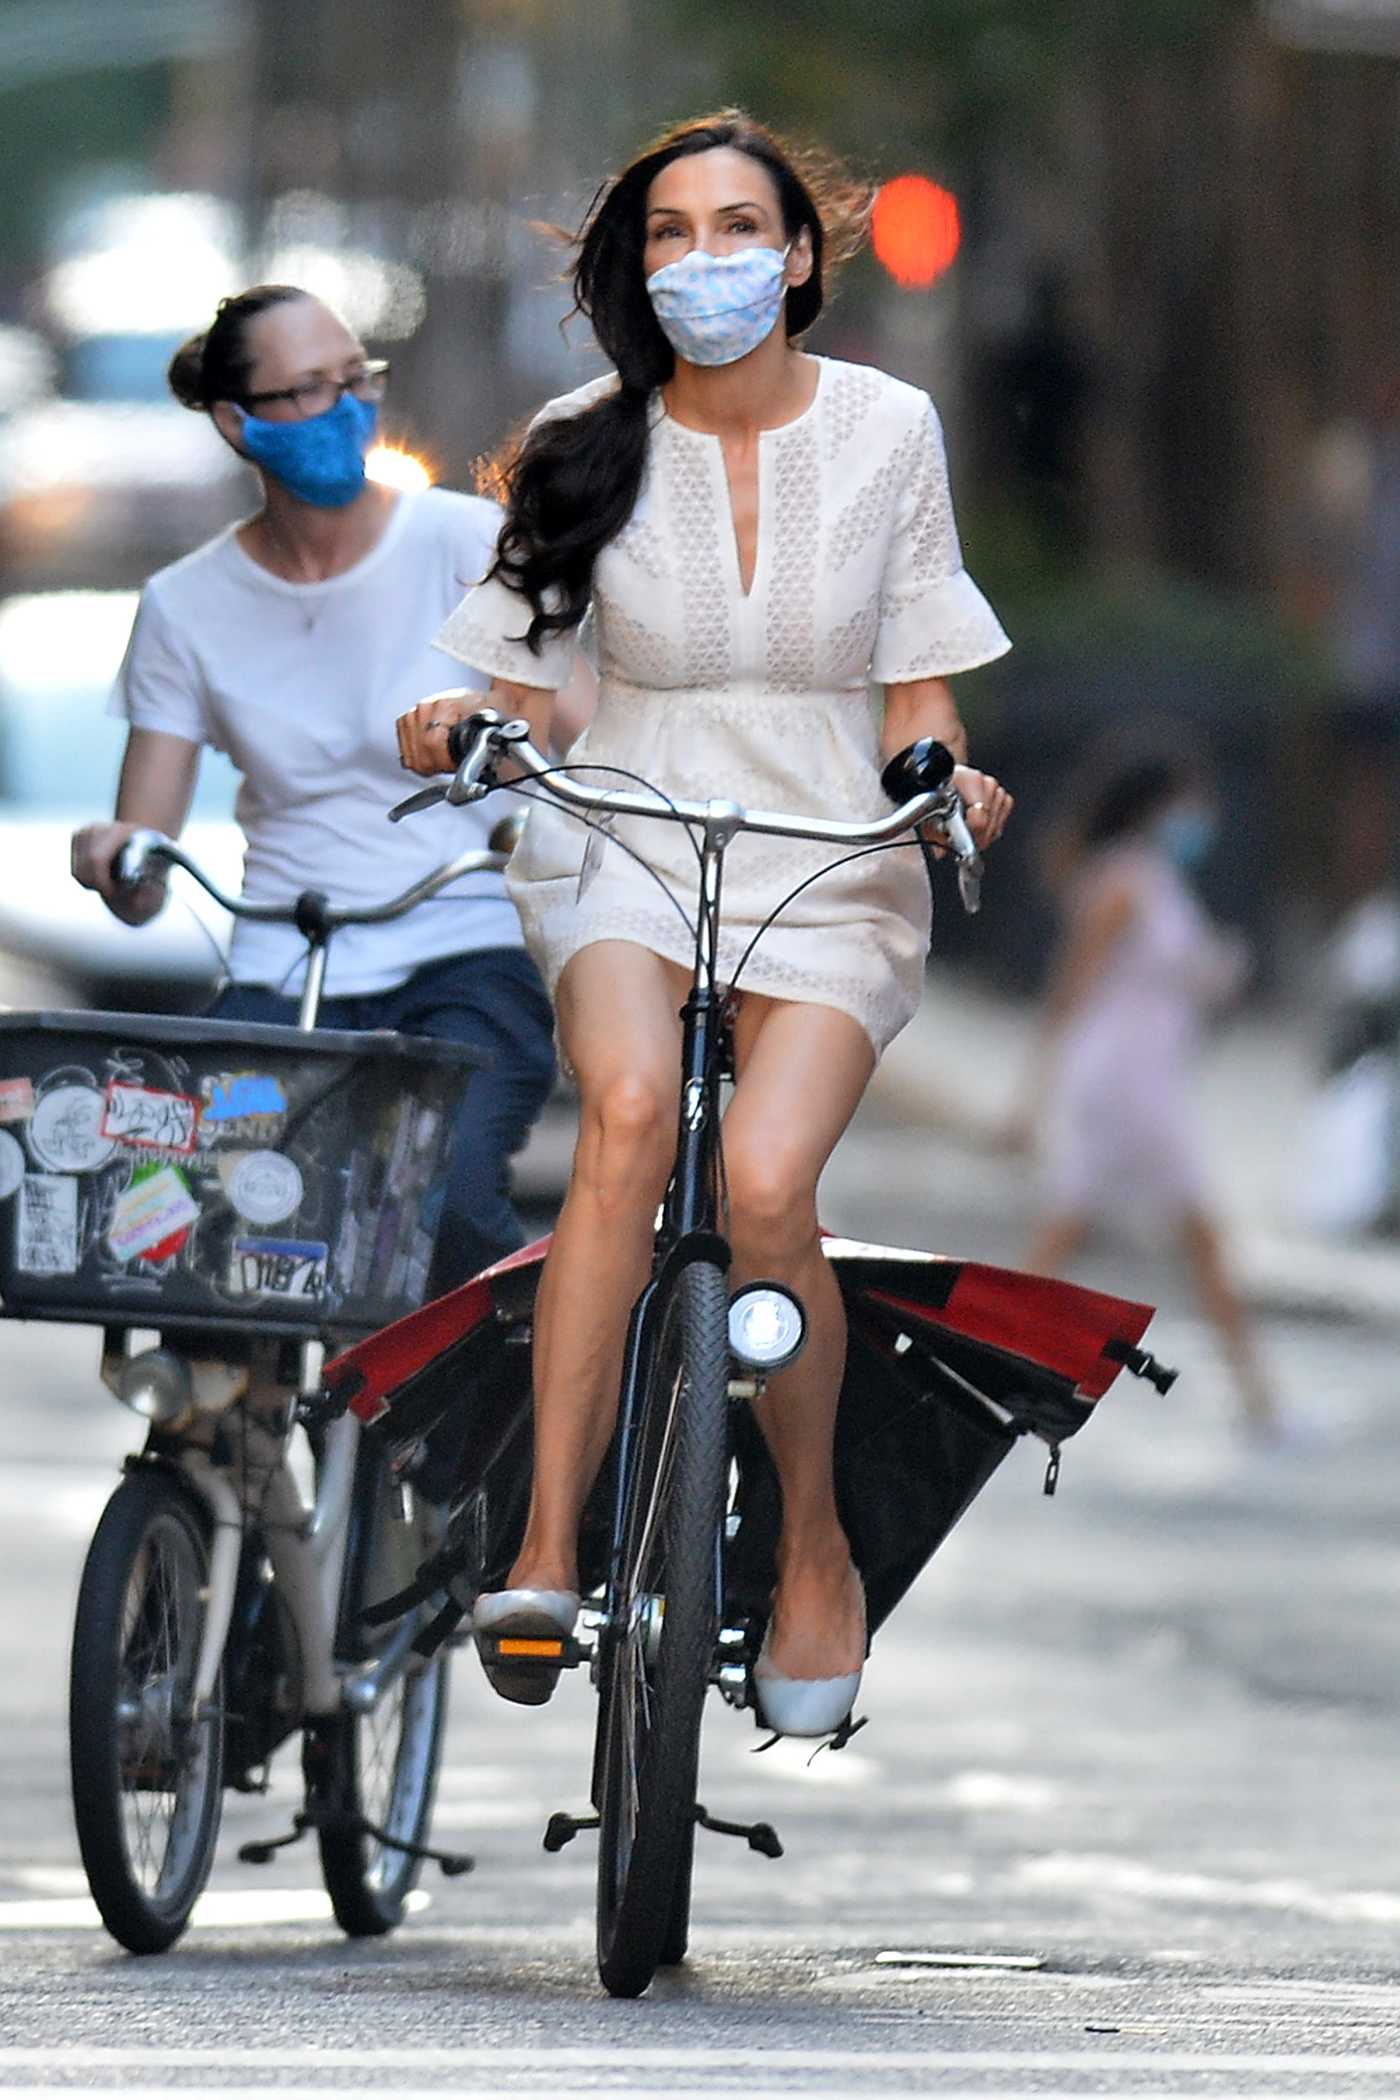 Famke Janssen in a Protective Mask Takes a Bike Ride in New York 07/14/2020